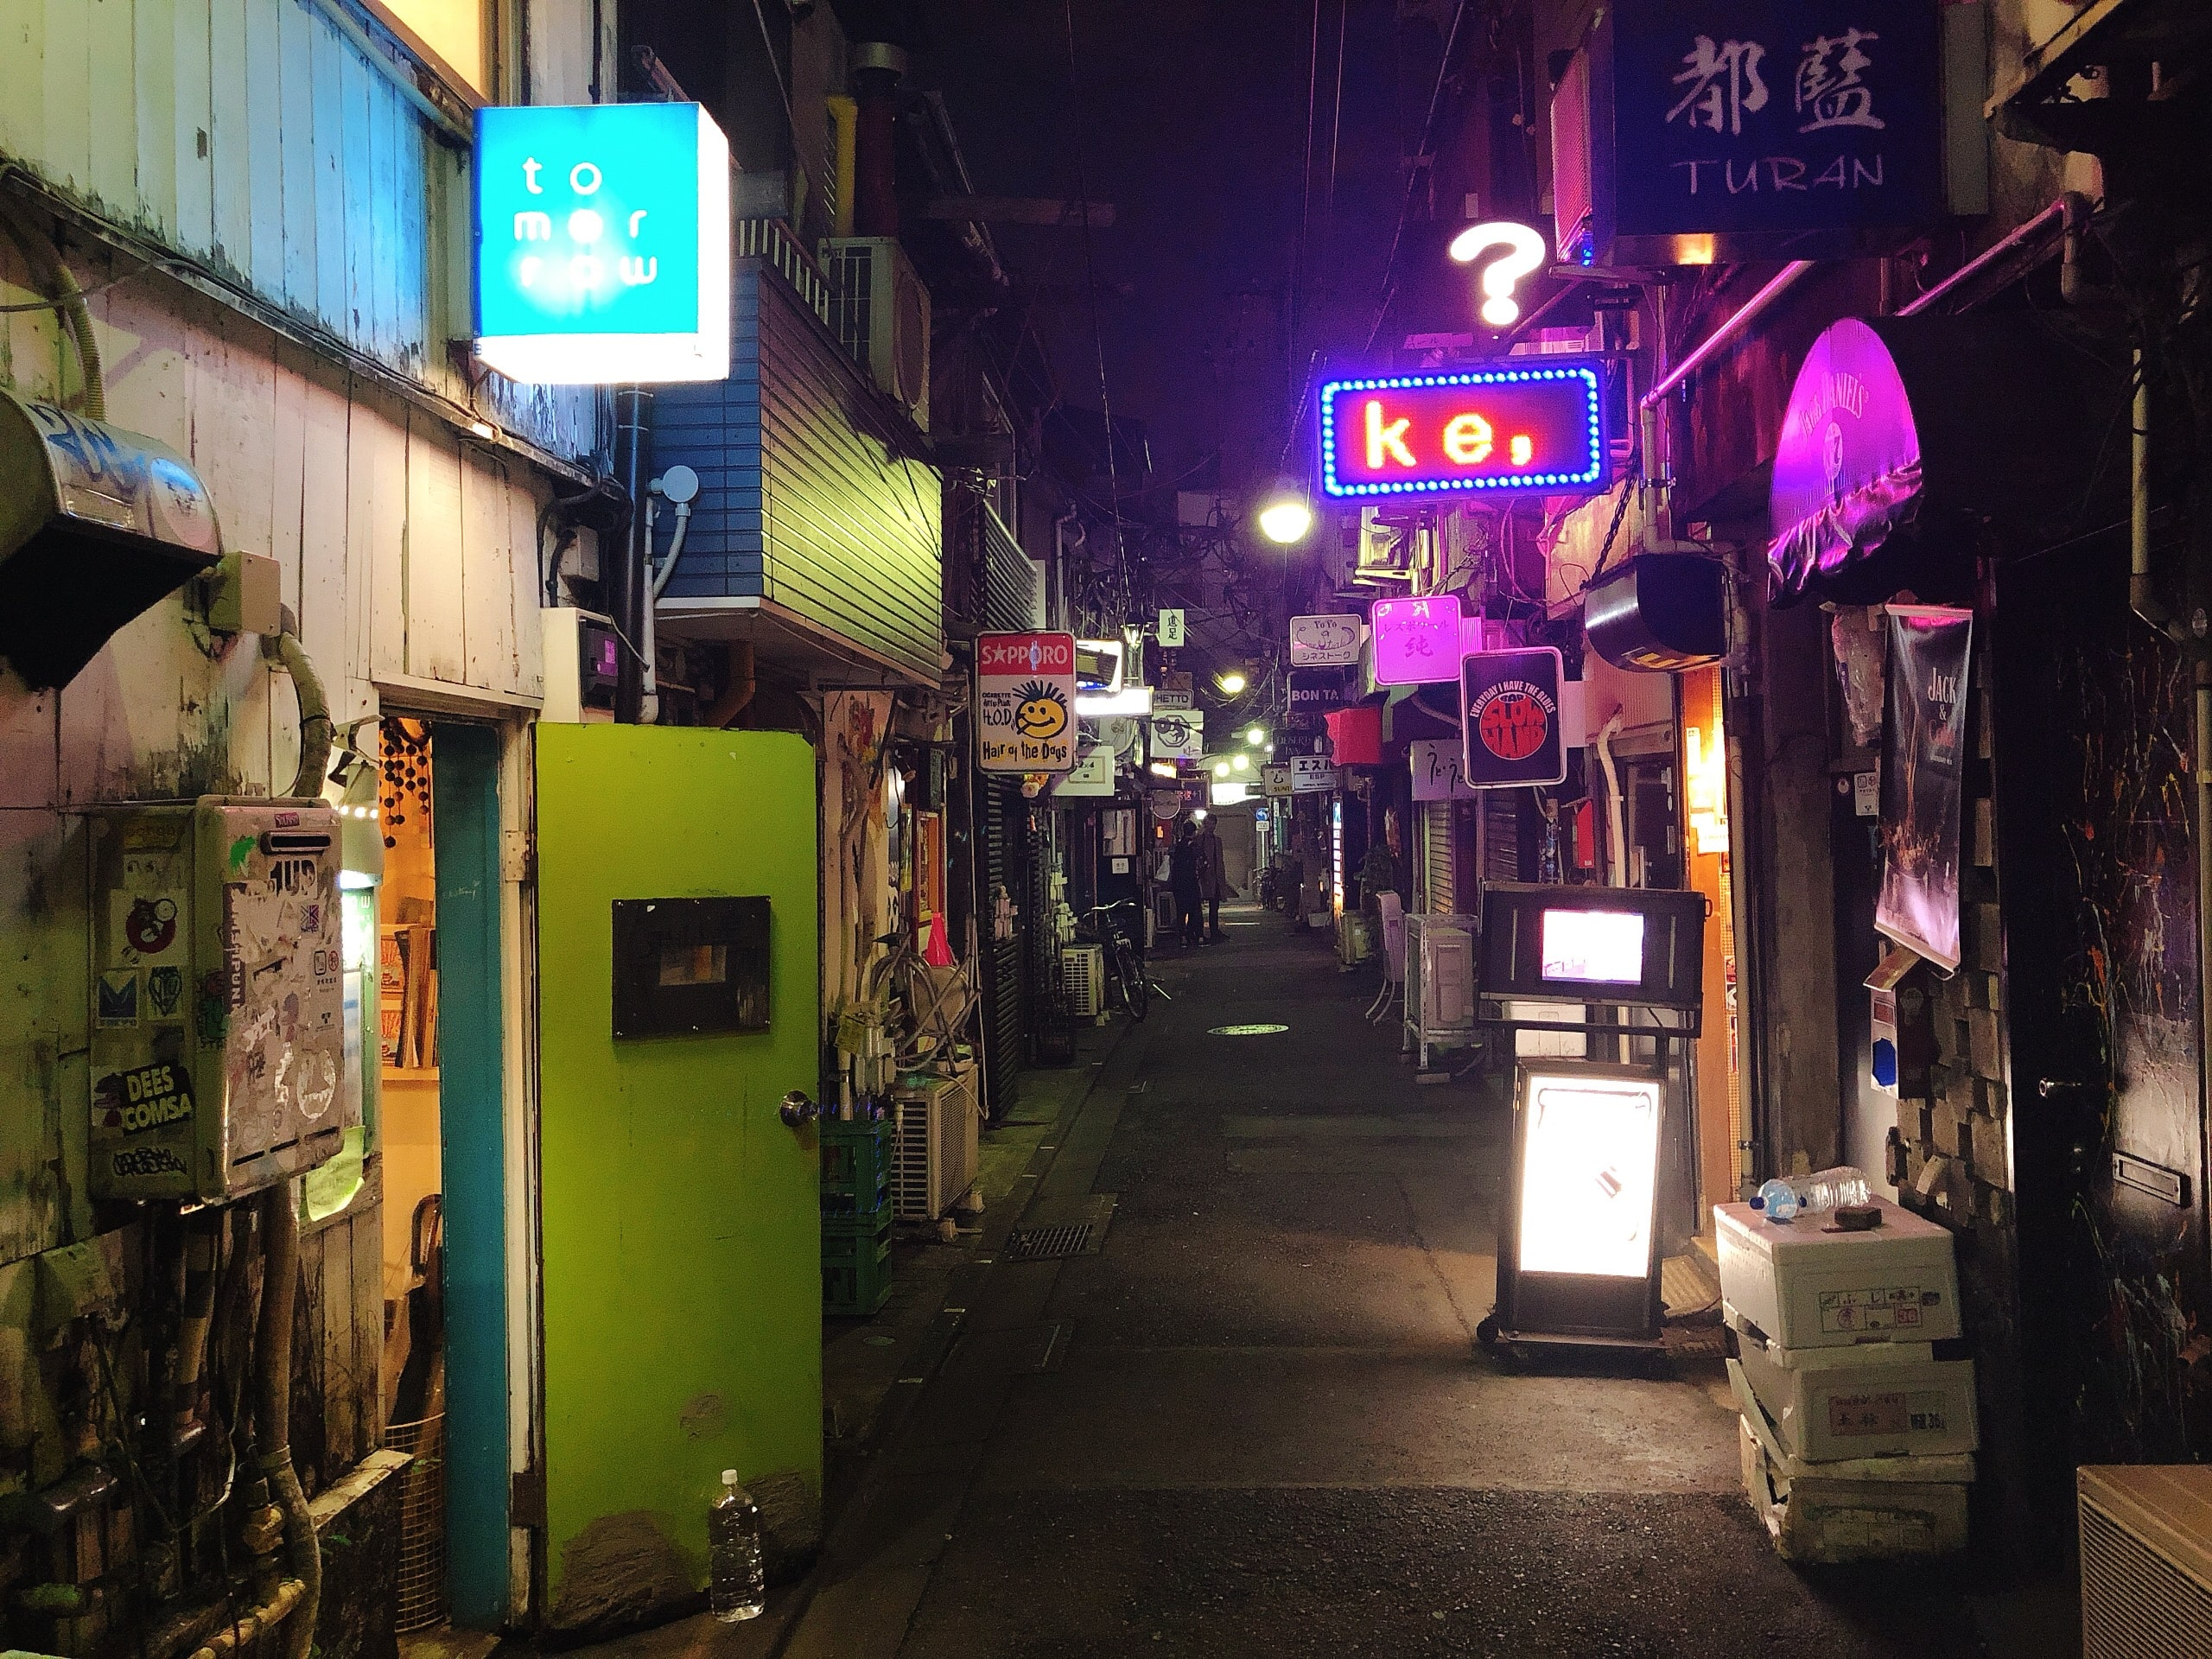 Golden Gai Alley at night